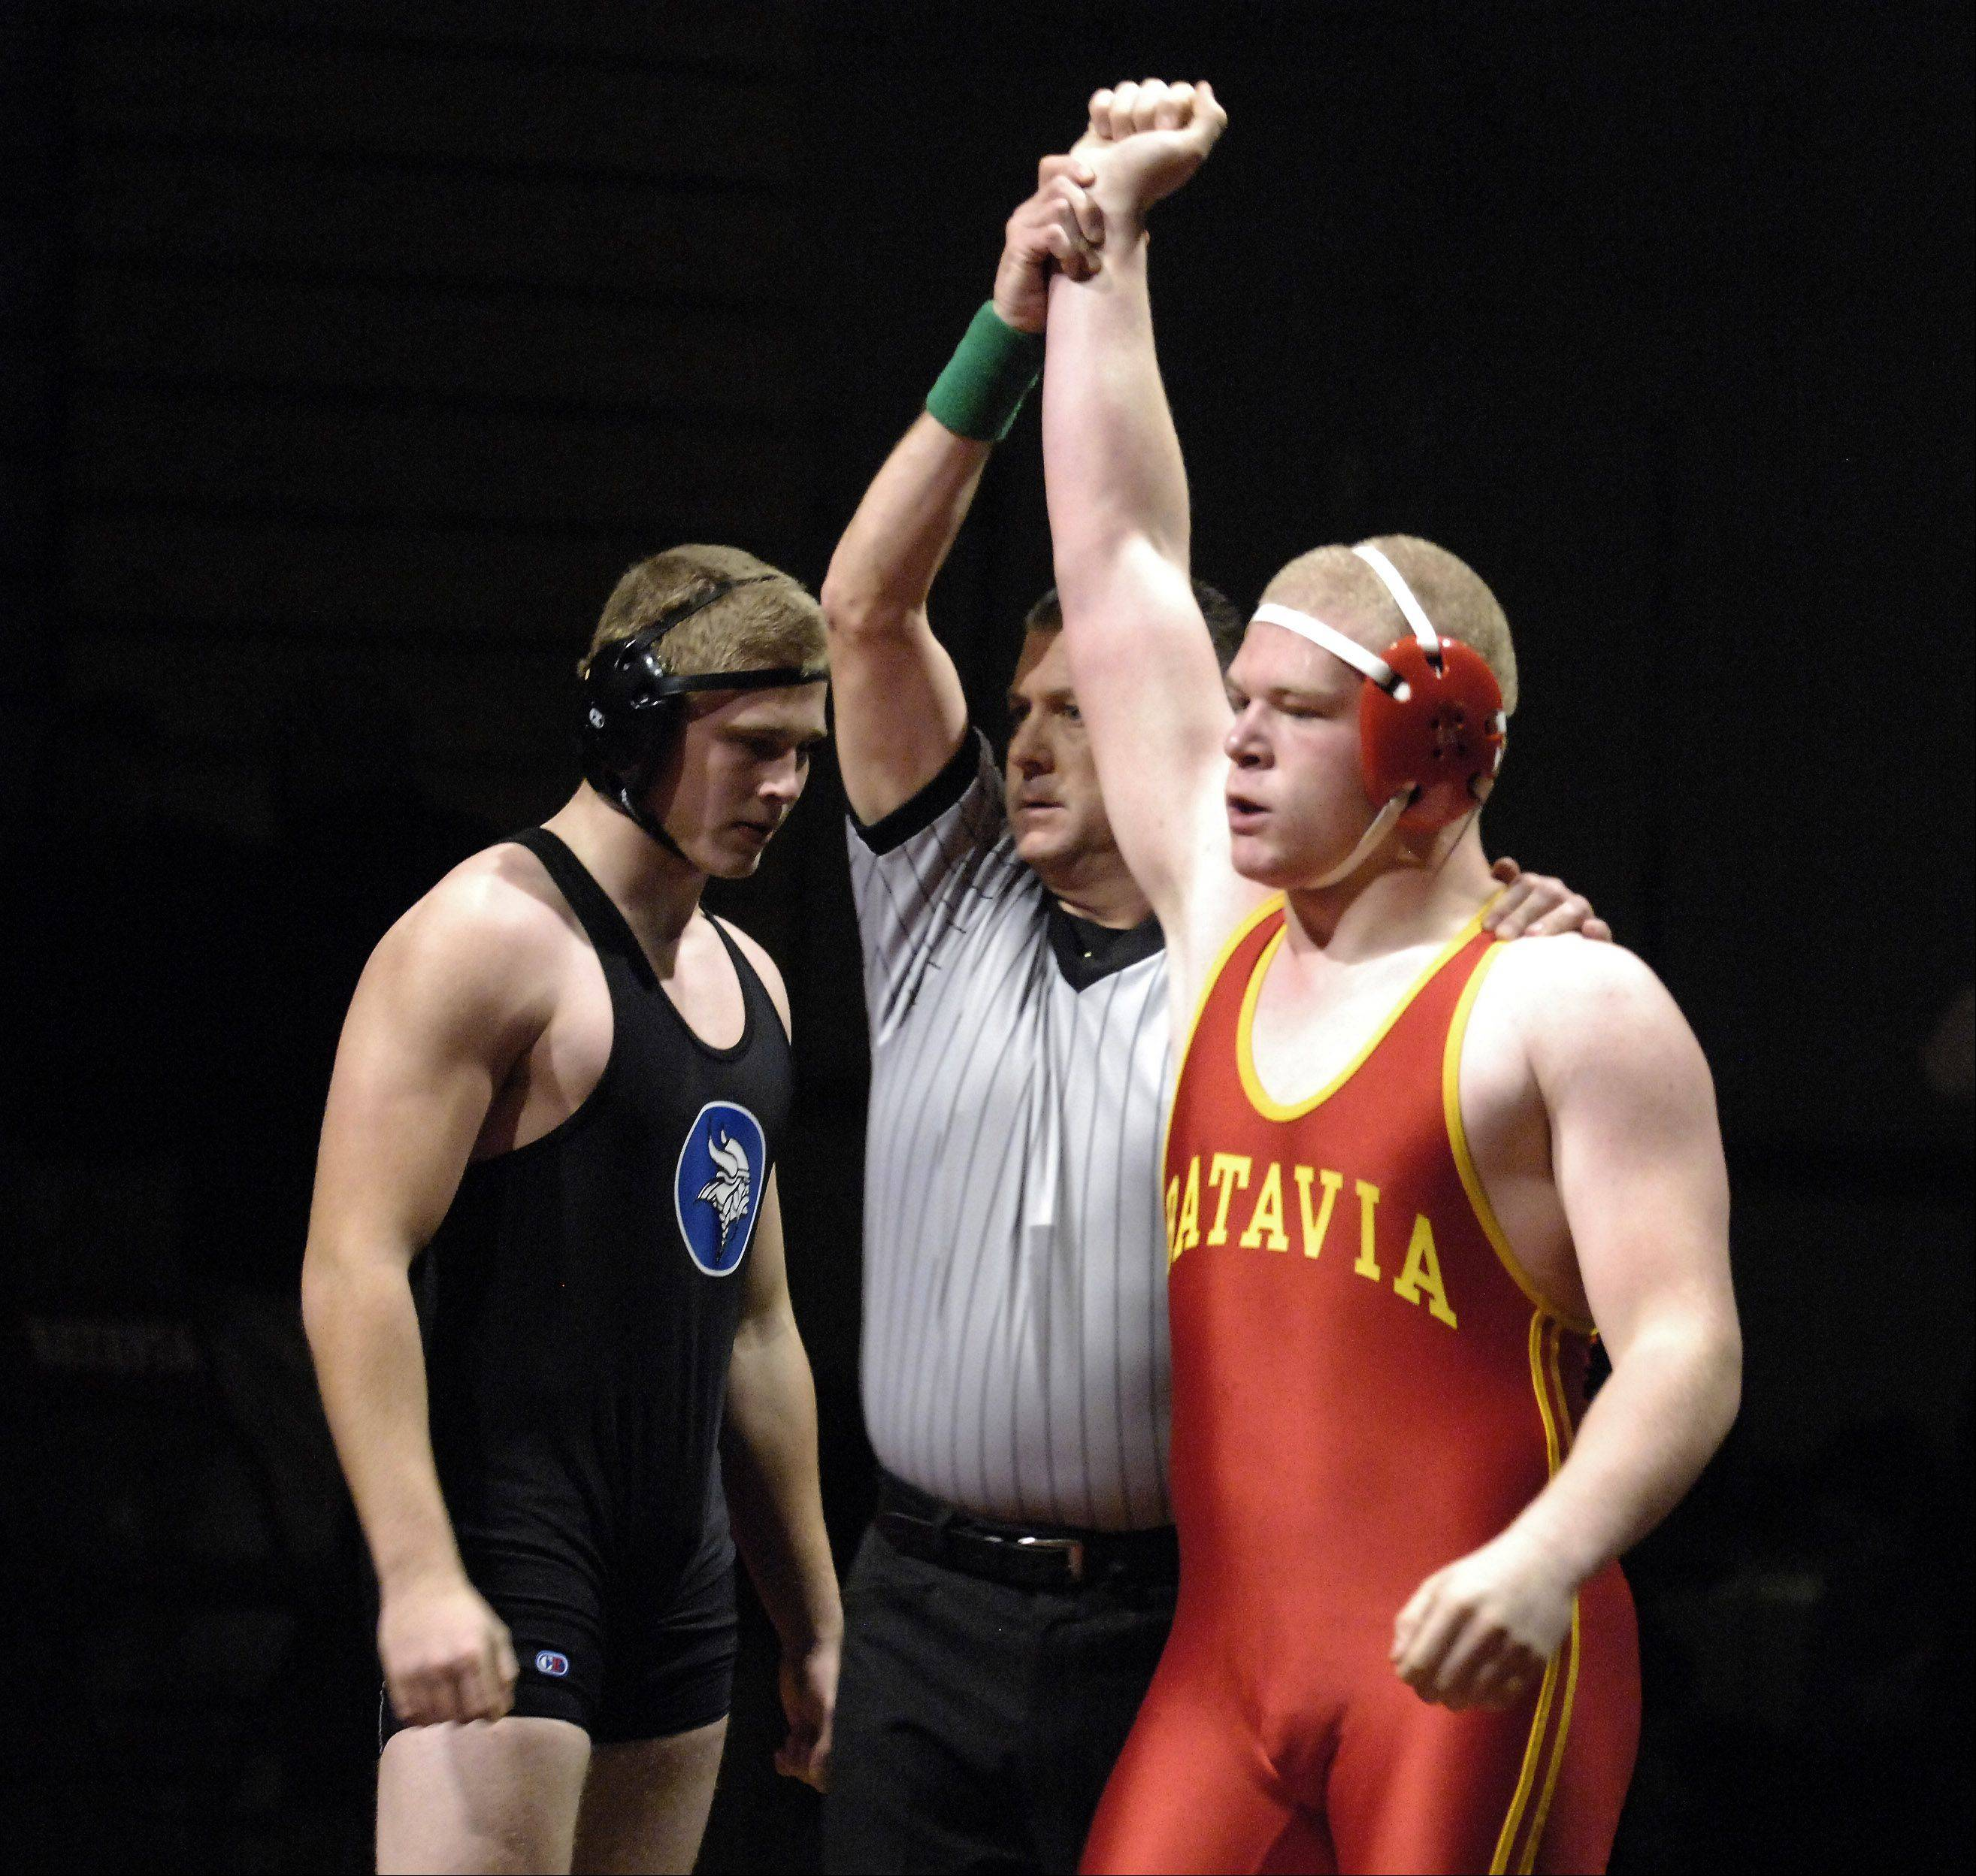 Batavia's Connor McKeehan defeated Geneva's Stephen Kemp.